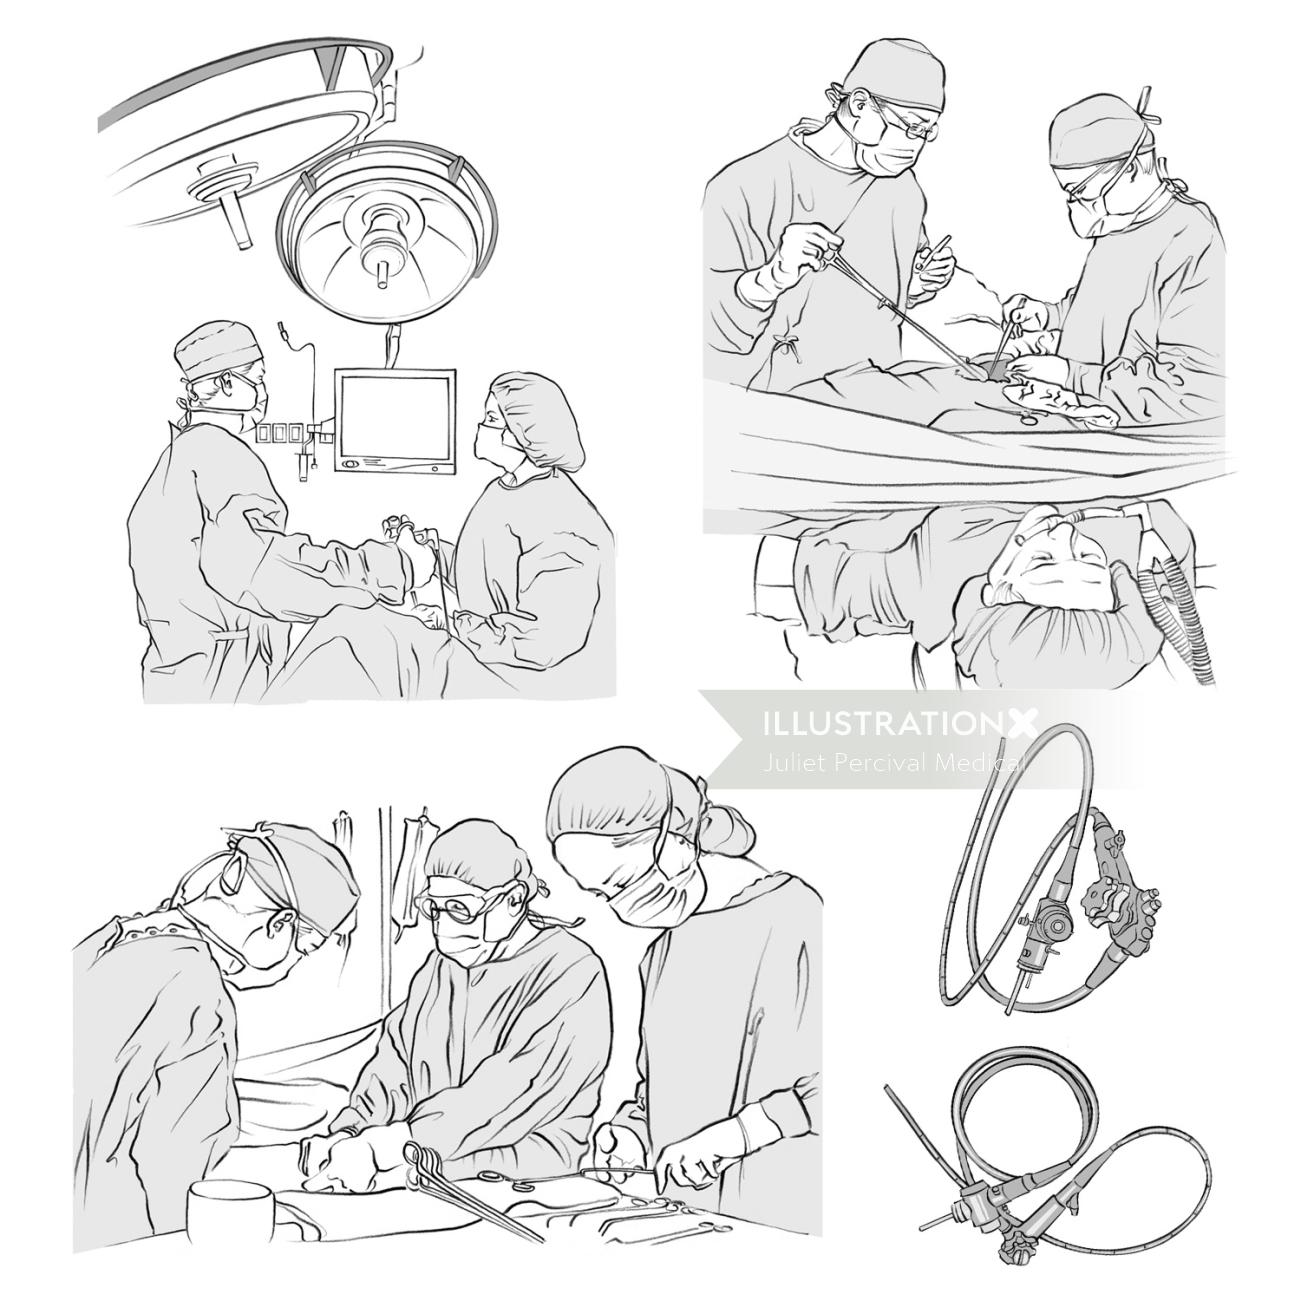 Colon surgery, operating theatre, surgeons, doctor,